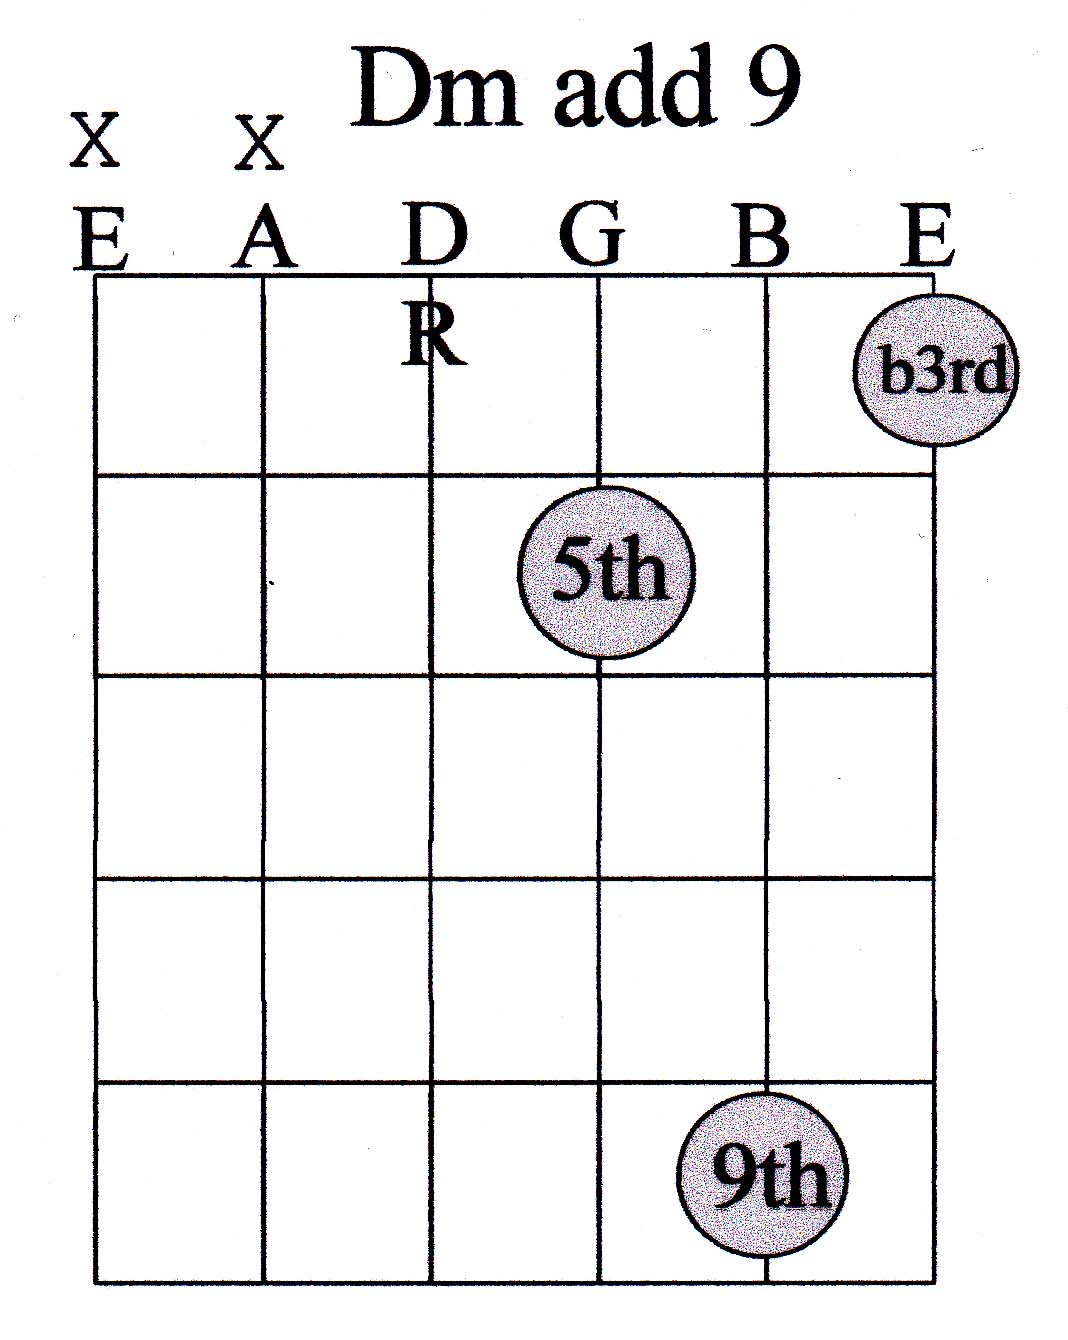 Guitar chord guide advanced marcus curtis music 24 chord hexwebz Image collections